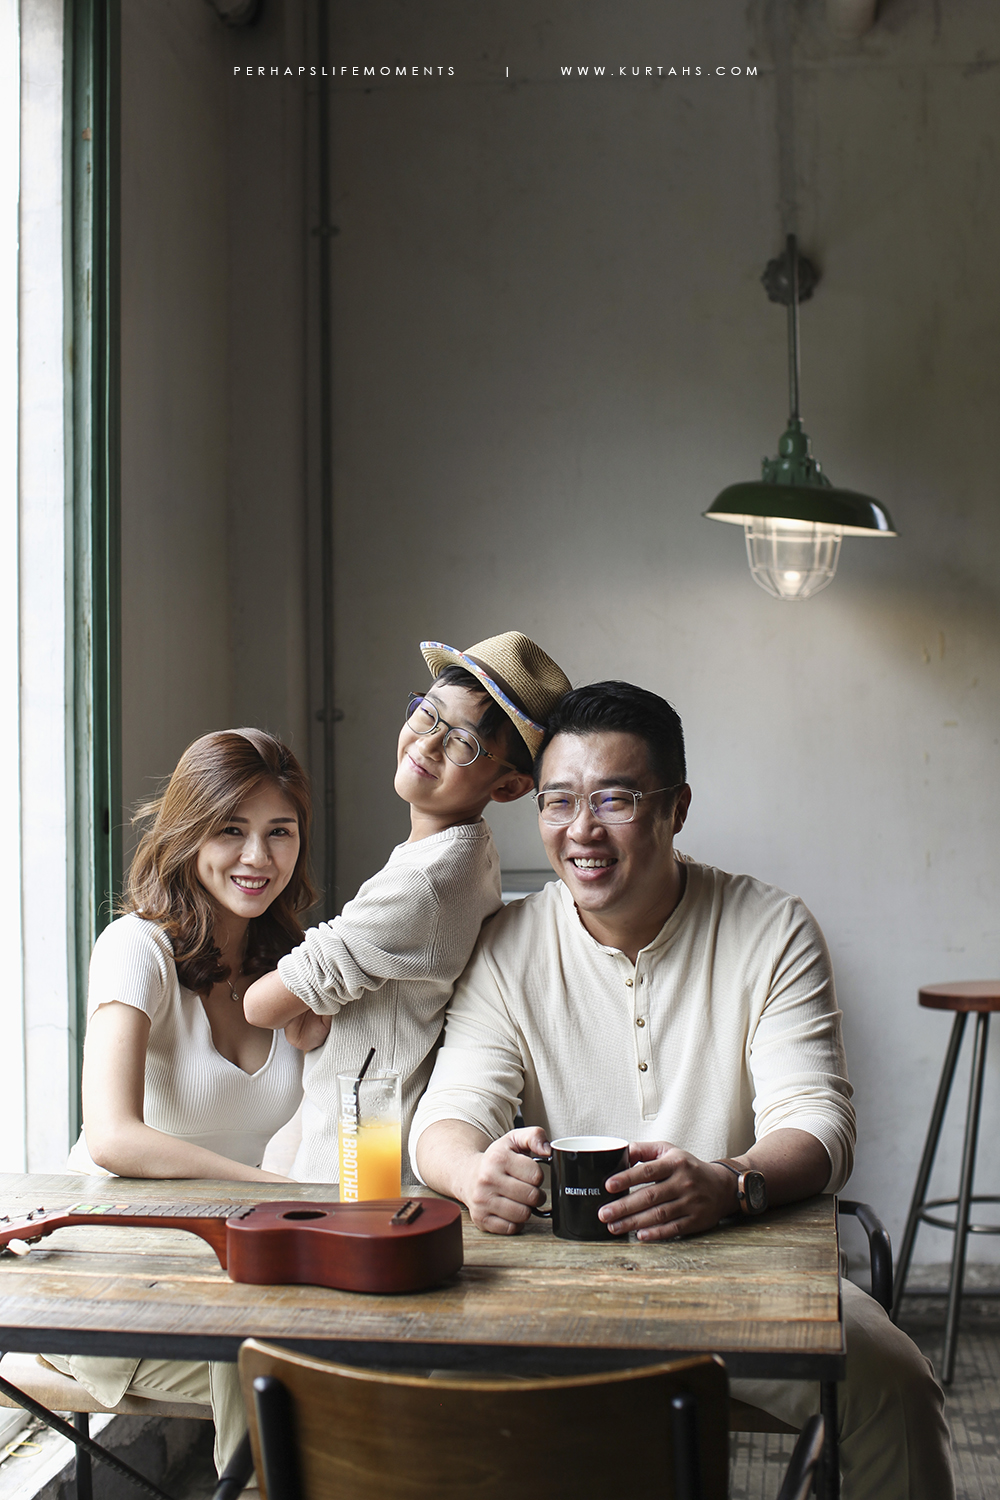 contemporary family portrait photography by kurt ahs . alwin anne lucas choo . 9132.jpg